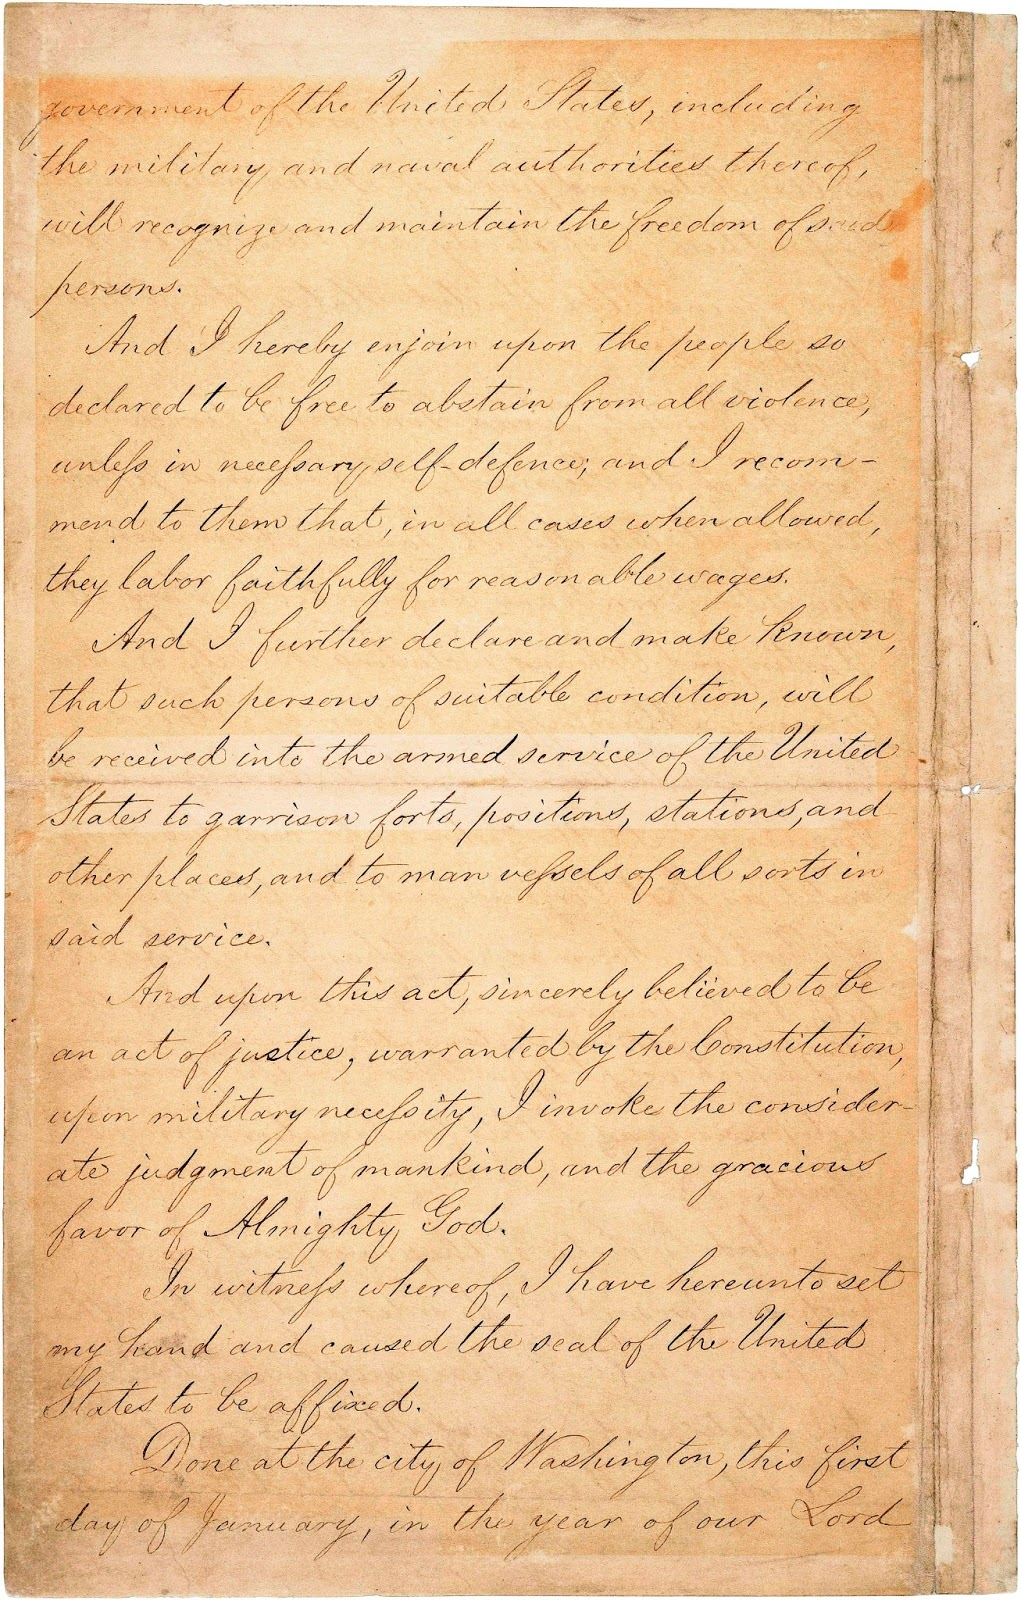 emancipation of proclamation essay Read this essay on emancipation proclamation come browse our large digital warehouse of free sample essays get the knowledge you need in order to pass your classes and more.